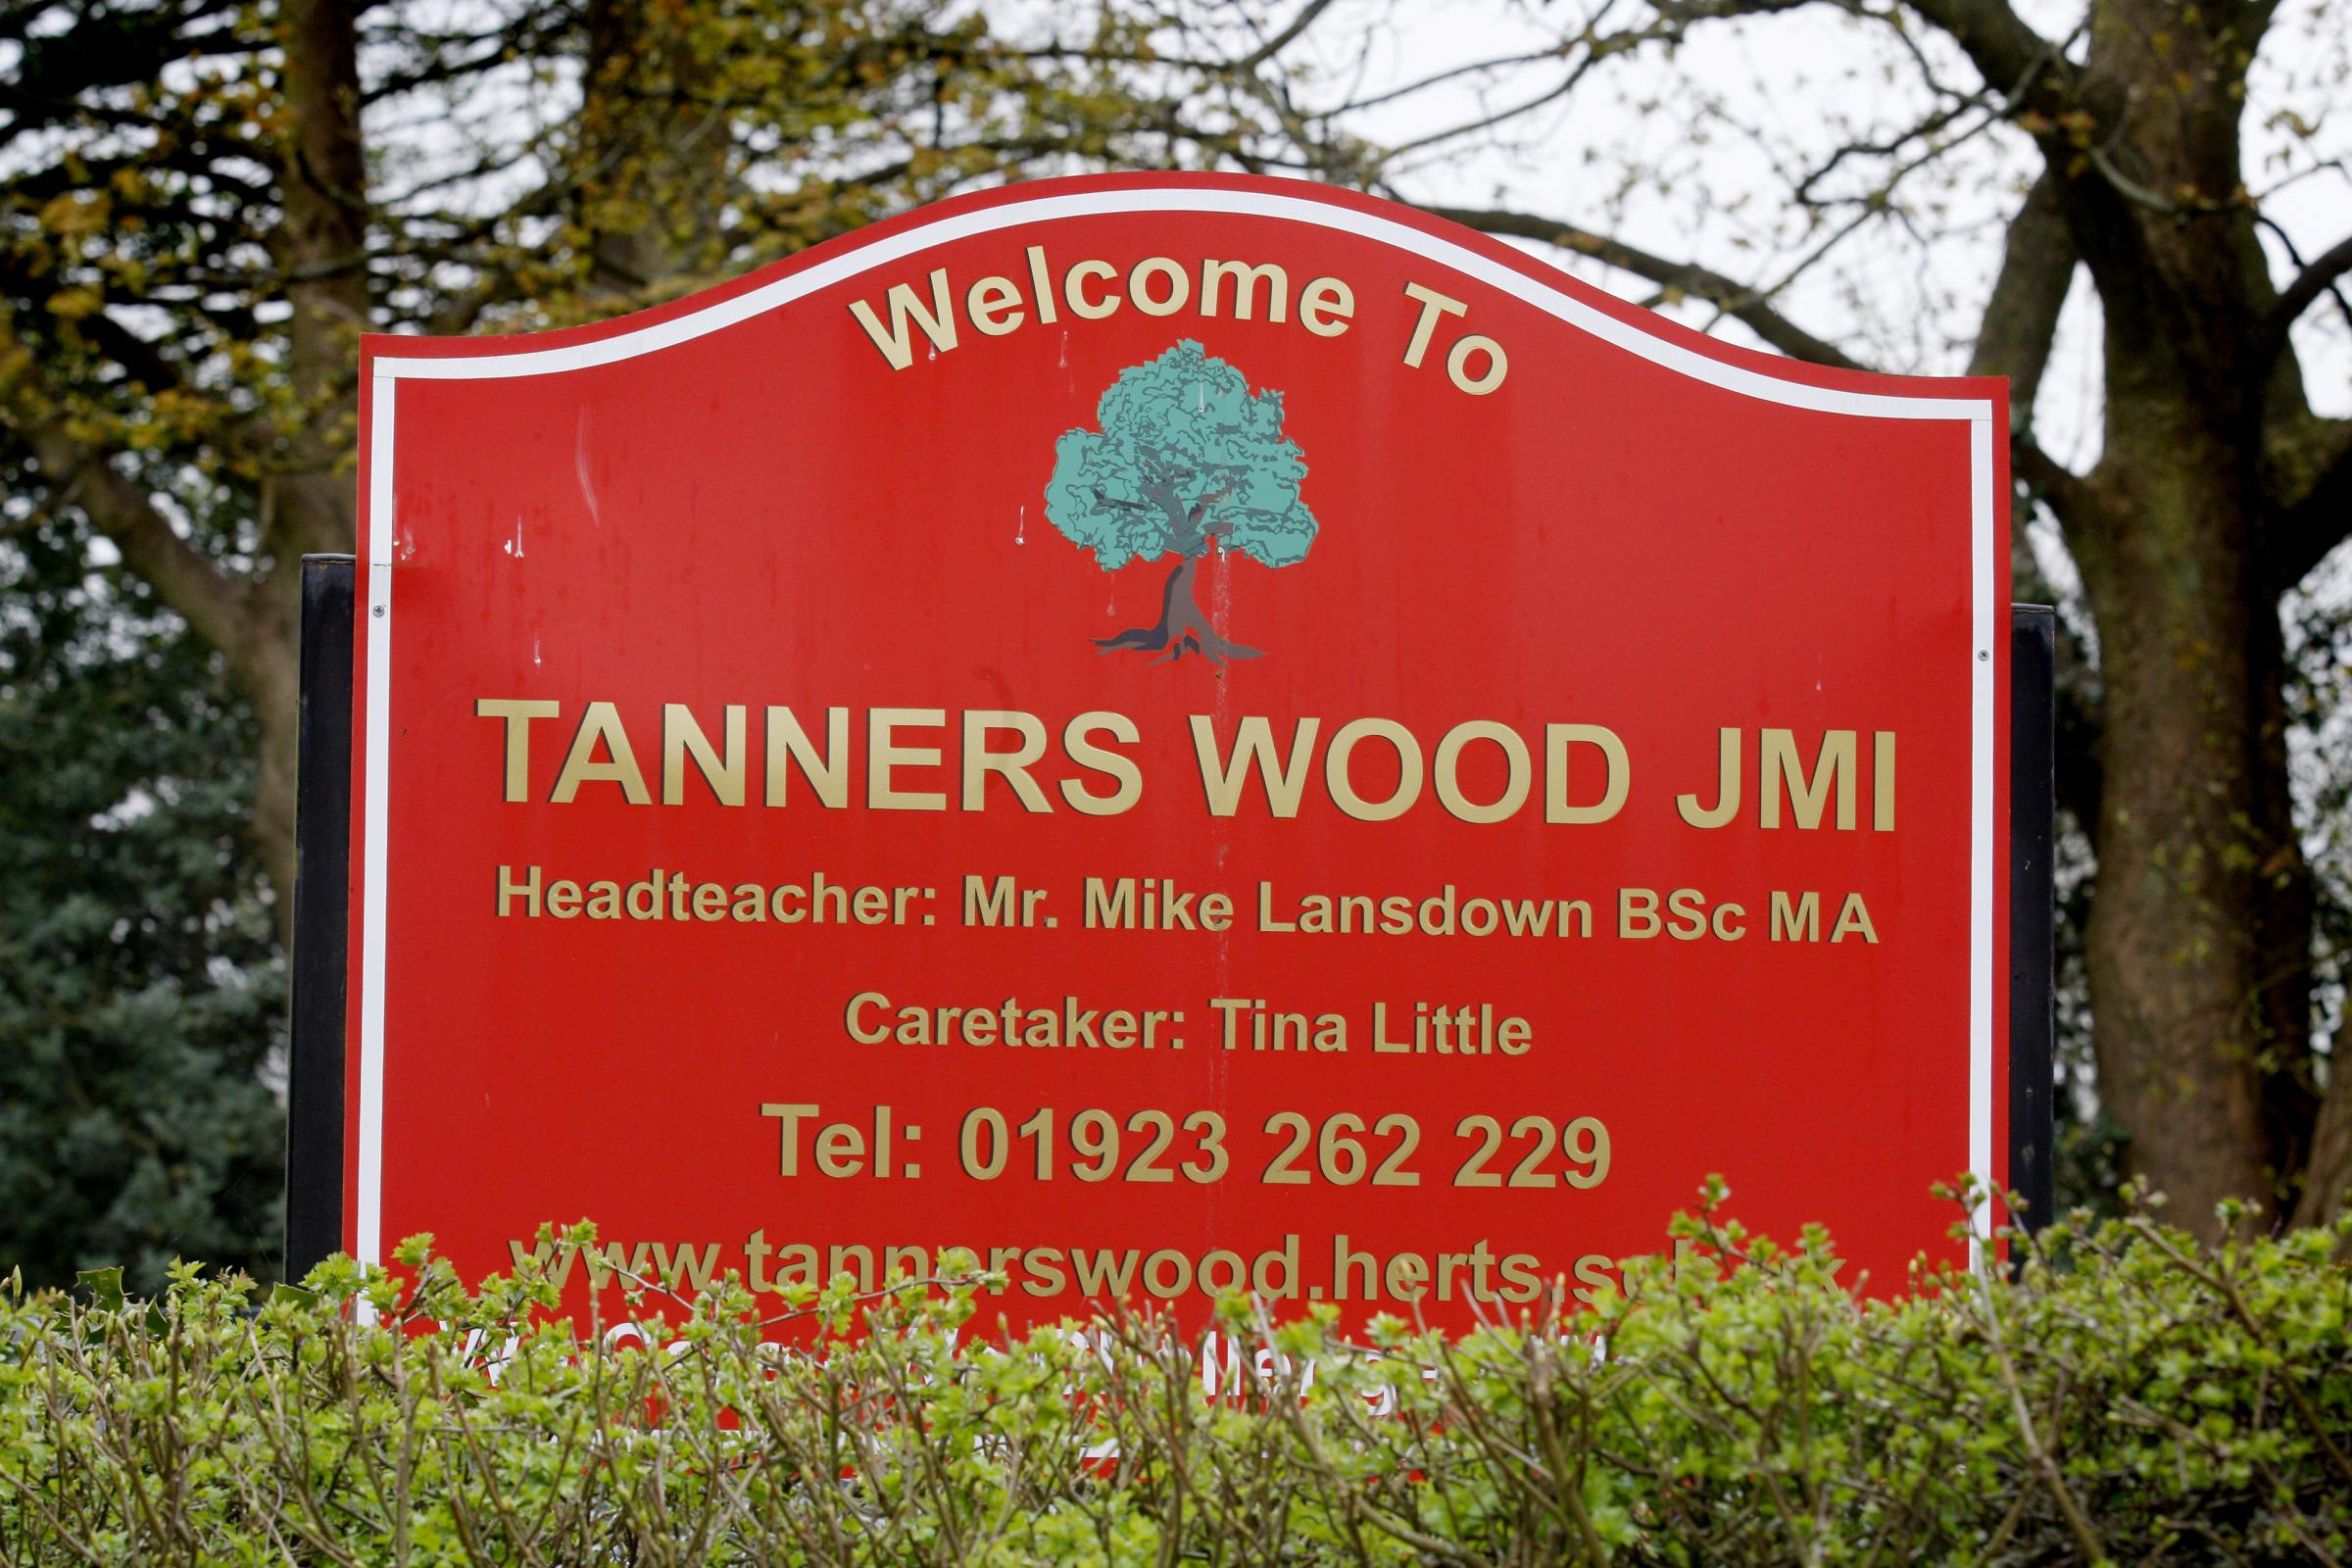 Tanners Wood head teacher 'confident' the school can improve